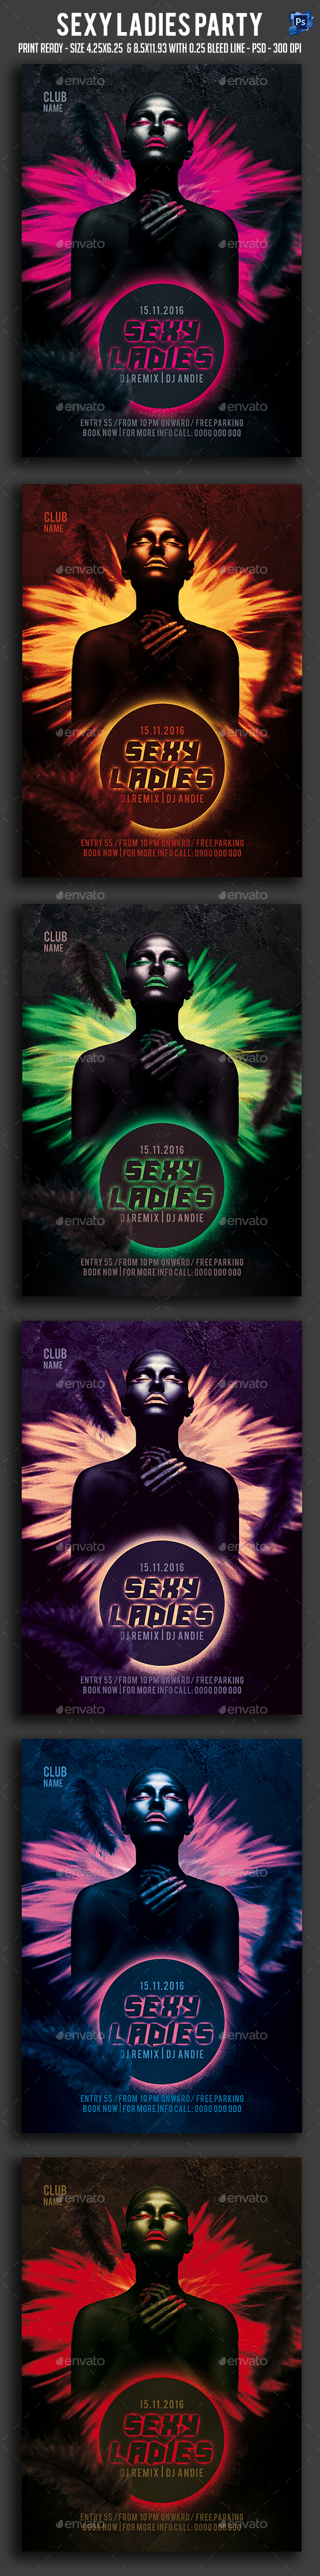 Sexy Ladies Party Flyer